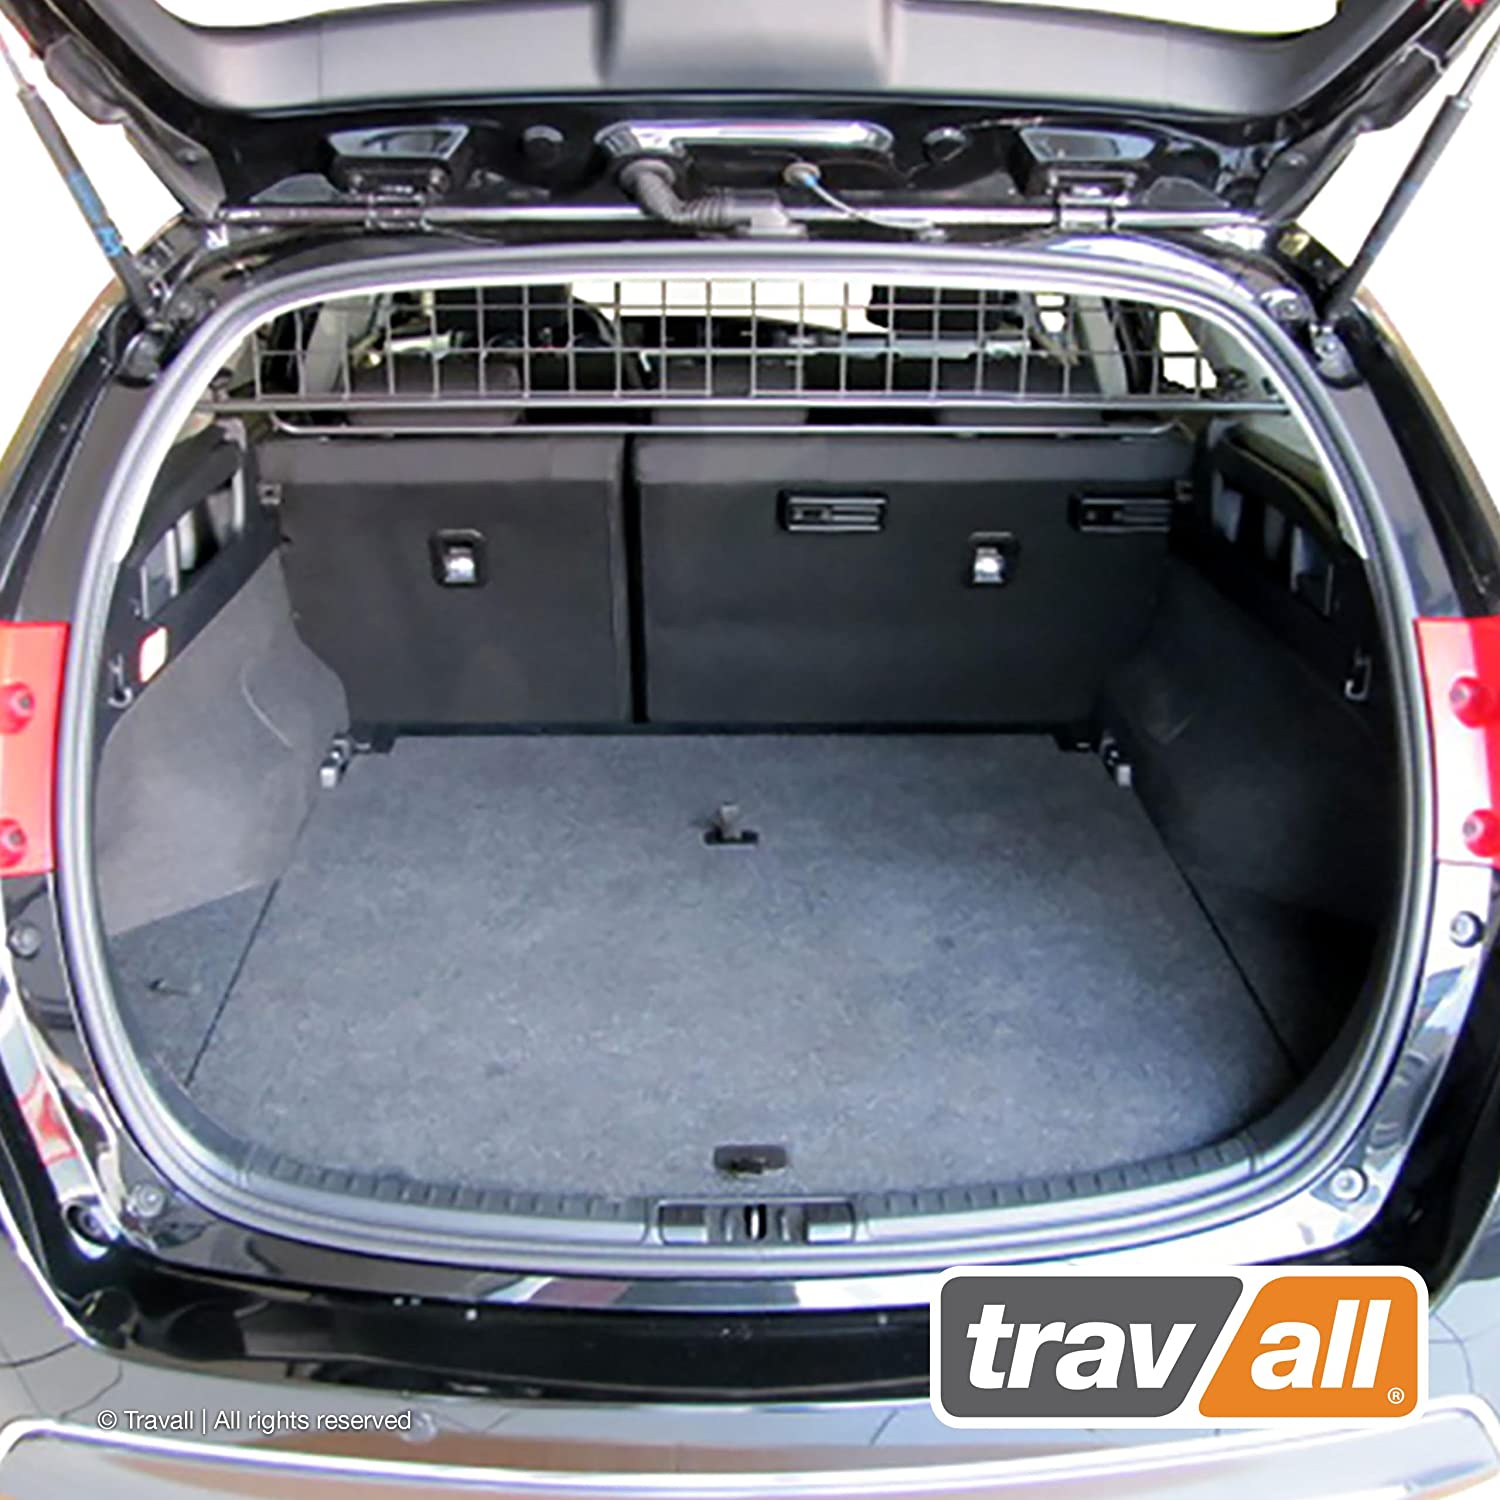 Travall Guard TDG1475 Vehicle-Specific Dog Guard